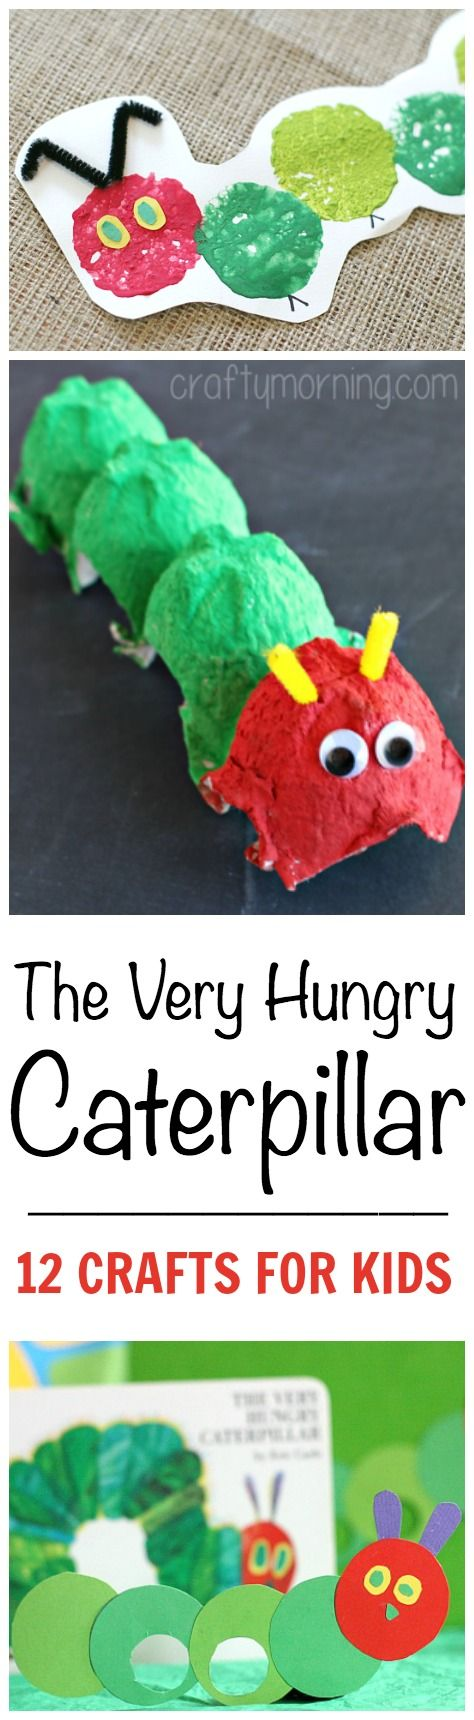 The Very Hungry Caterpillar Crafts For Kids - Create some keepsake crafts with your kids of everyone's favourite caterpillar!